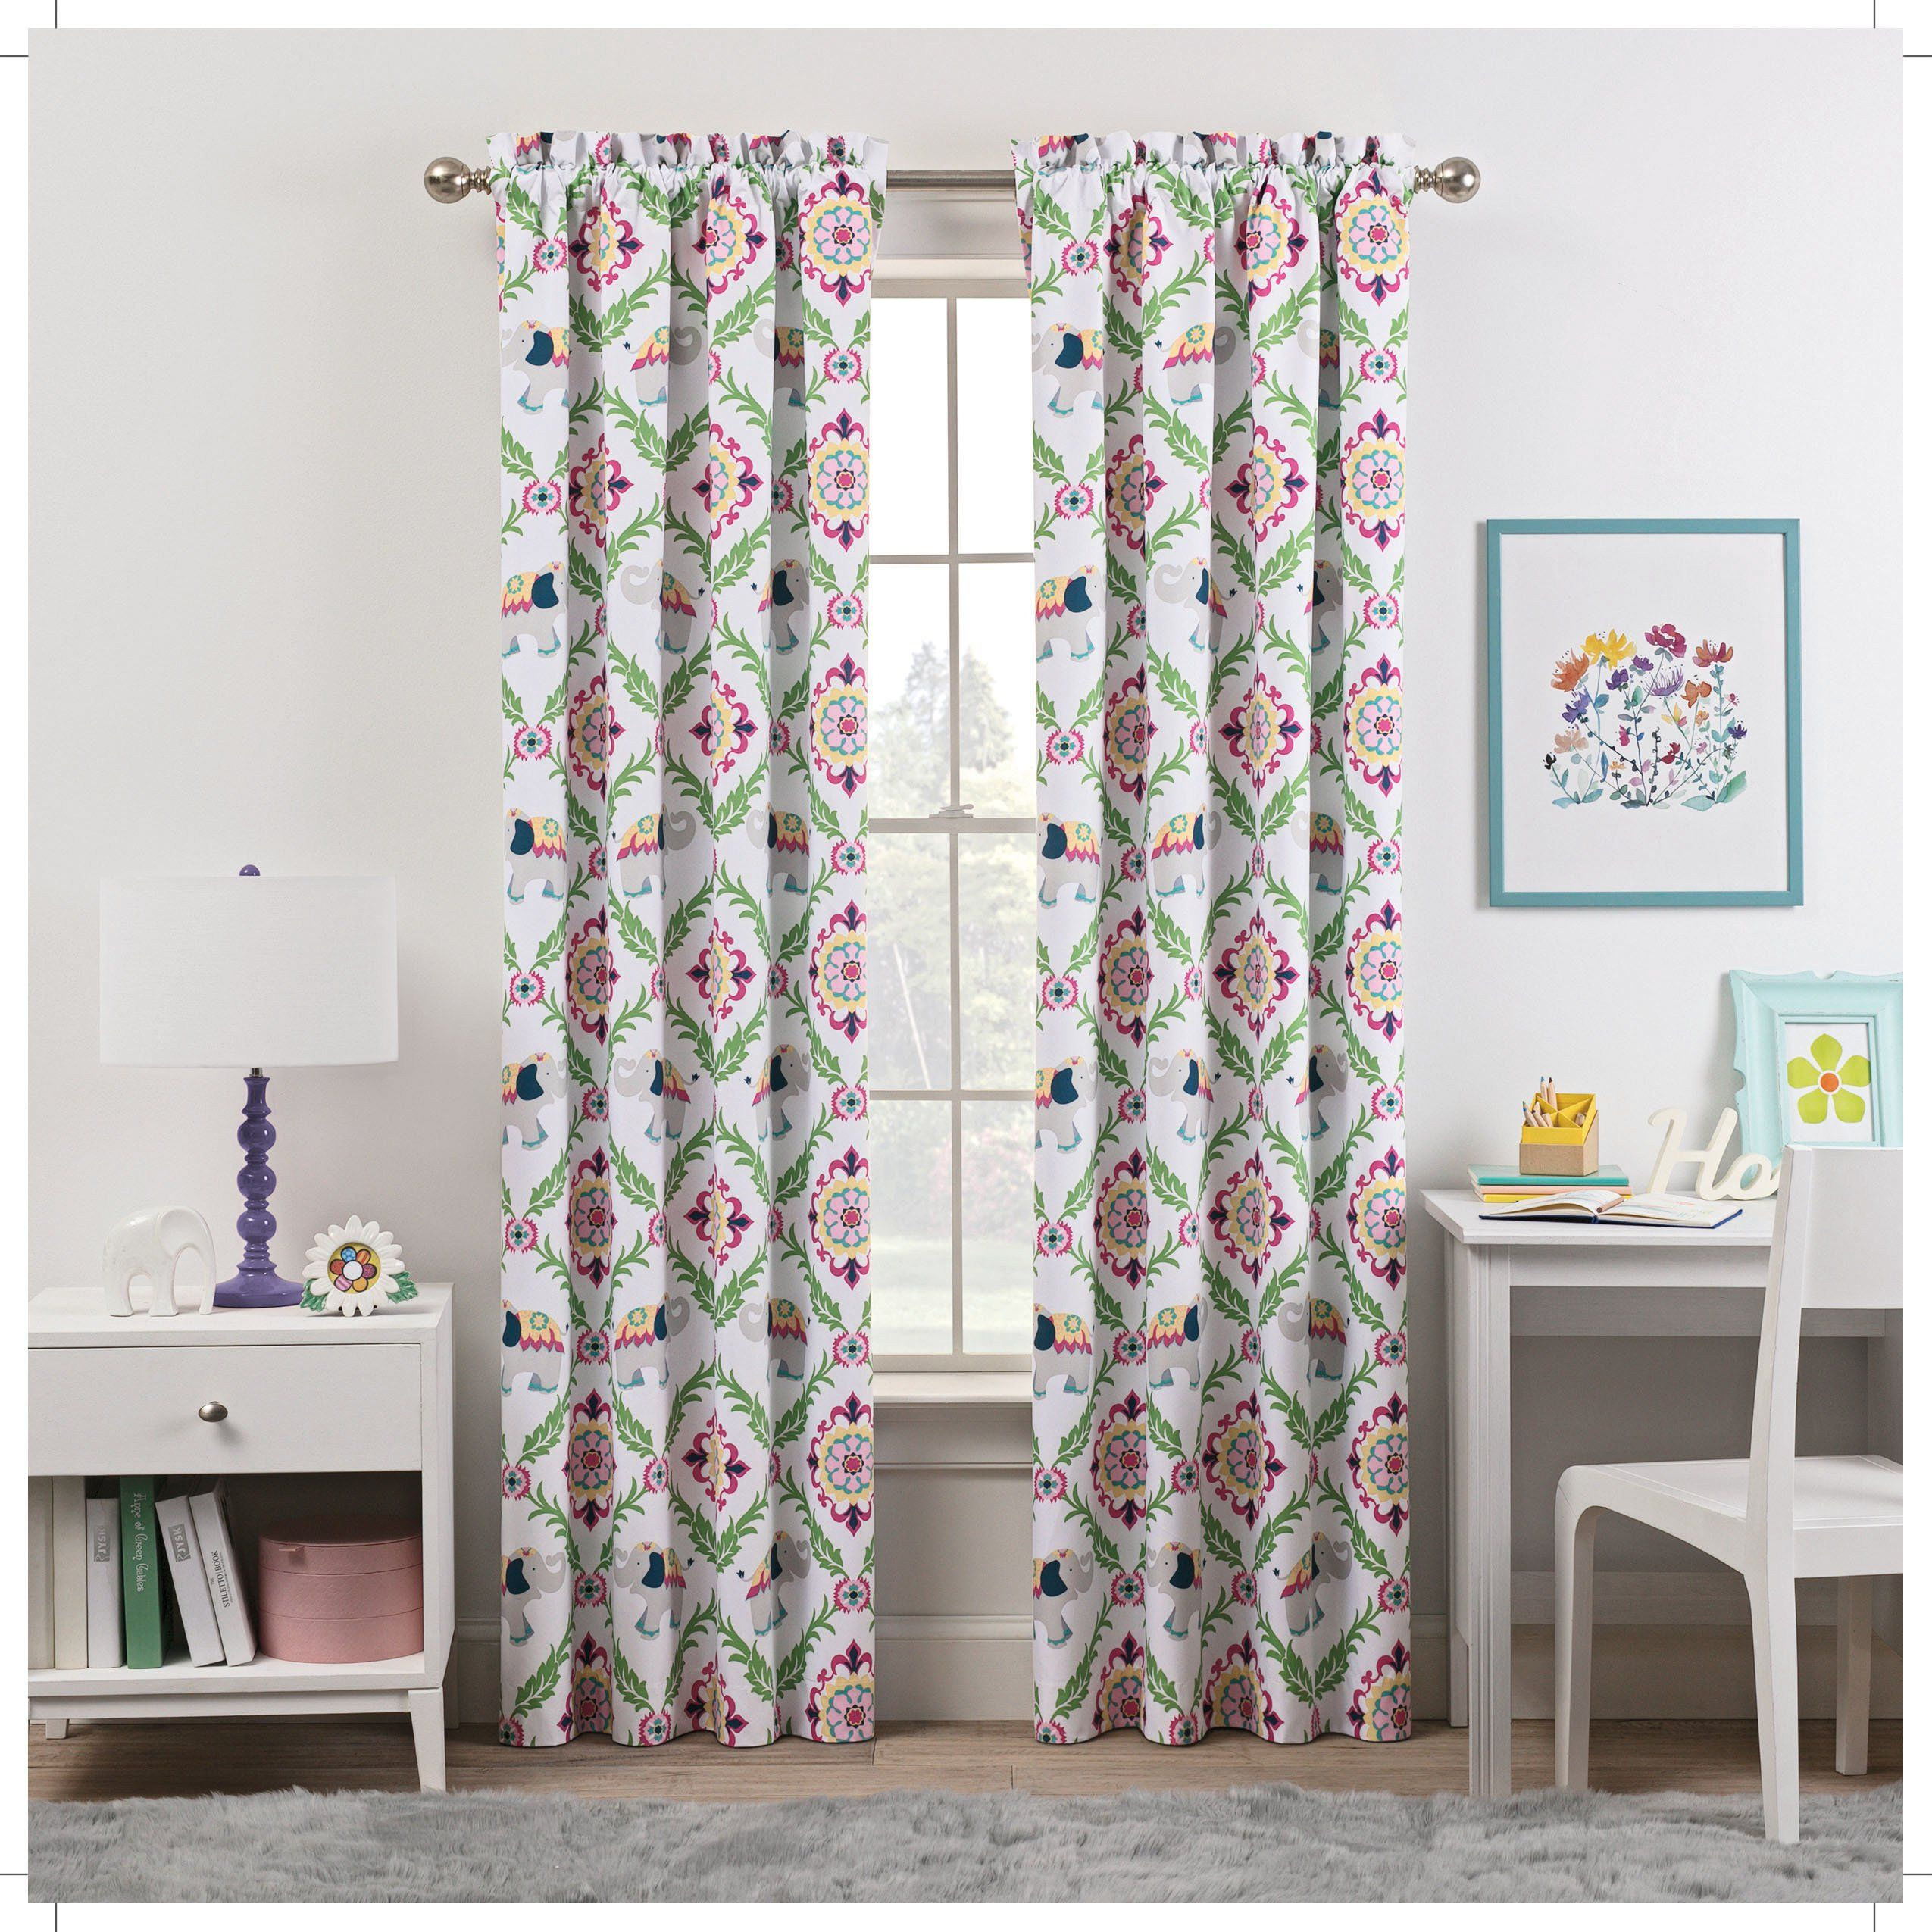 a91fed4602c2726f0a6cf6fa46c193cb - Better Homes And Gardens Global Elephant Shower Curtain